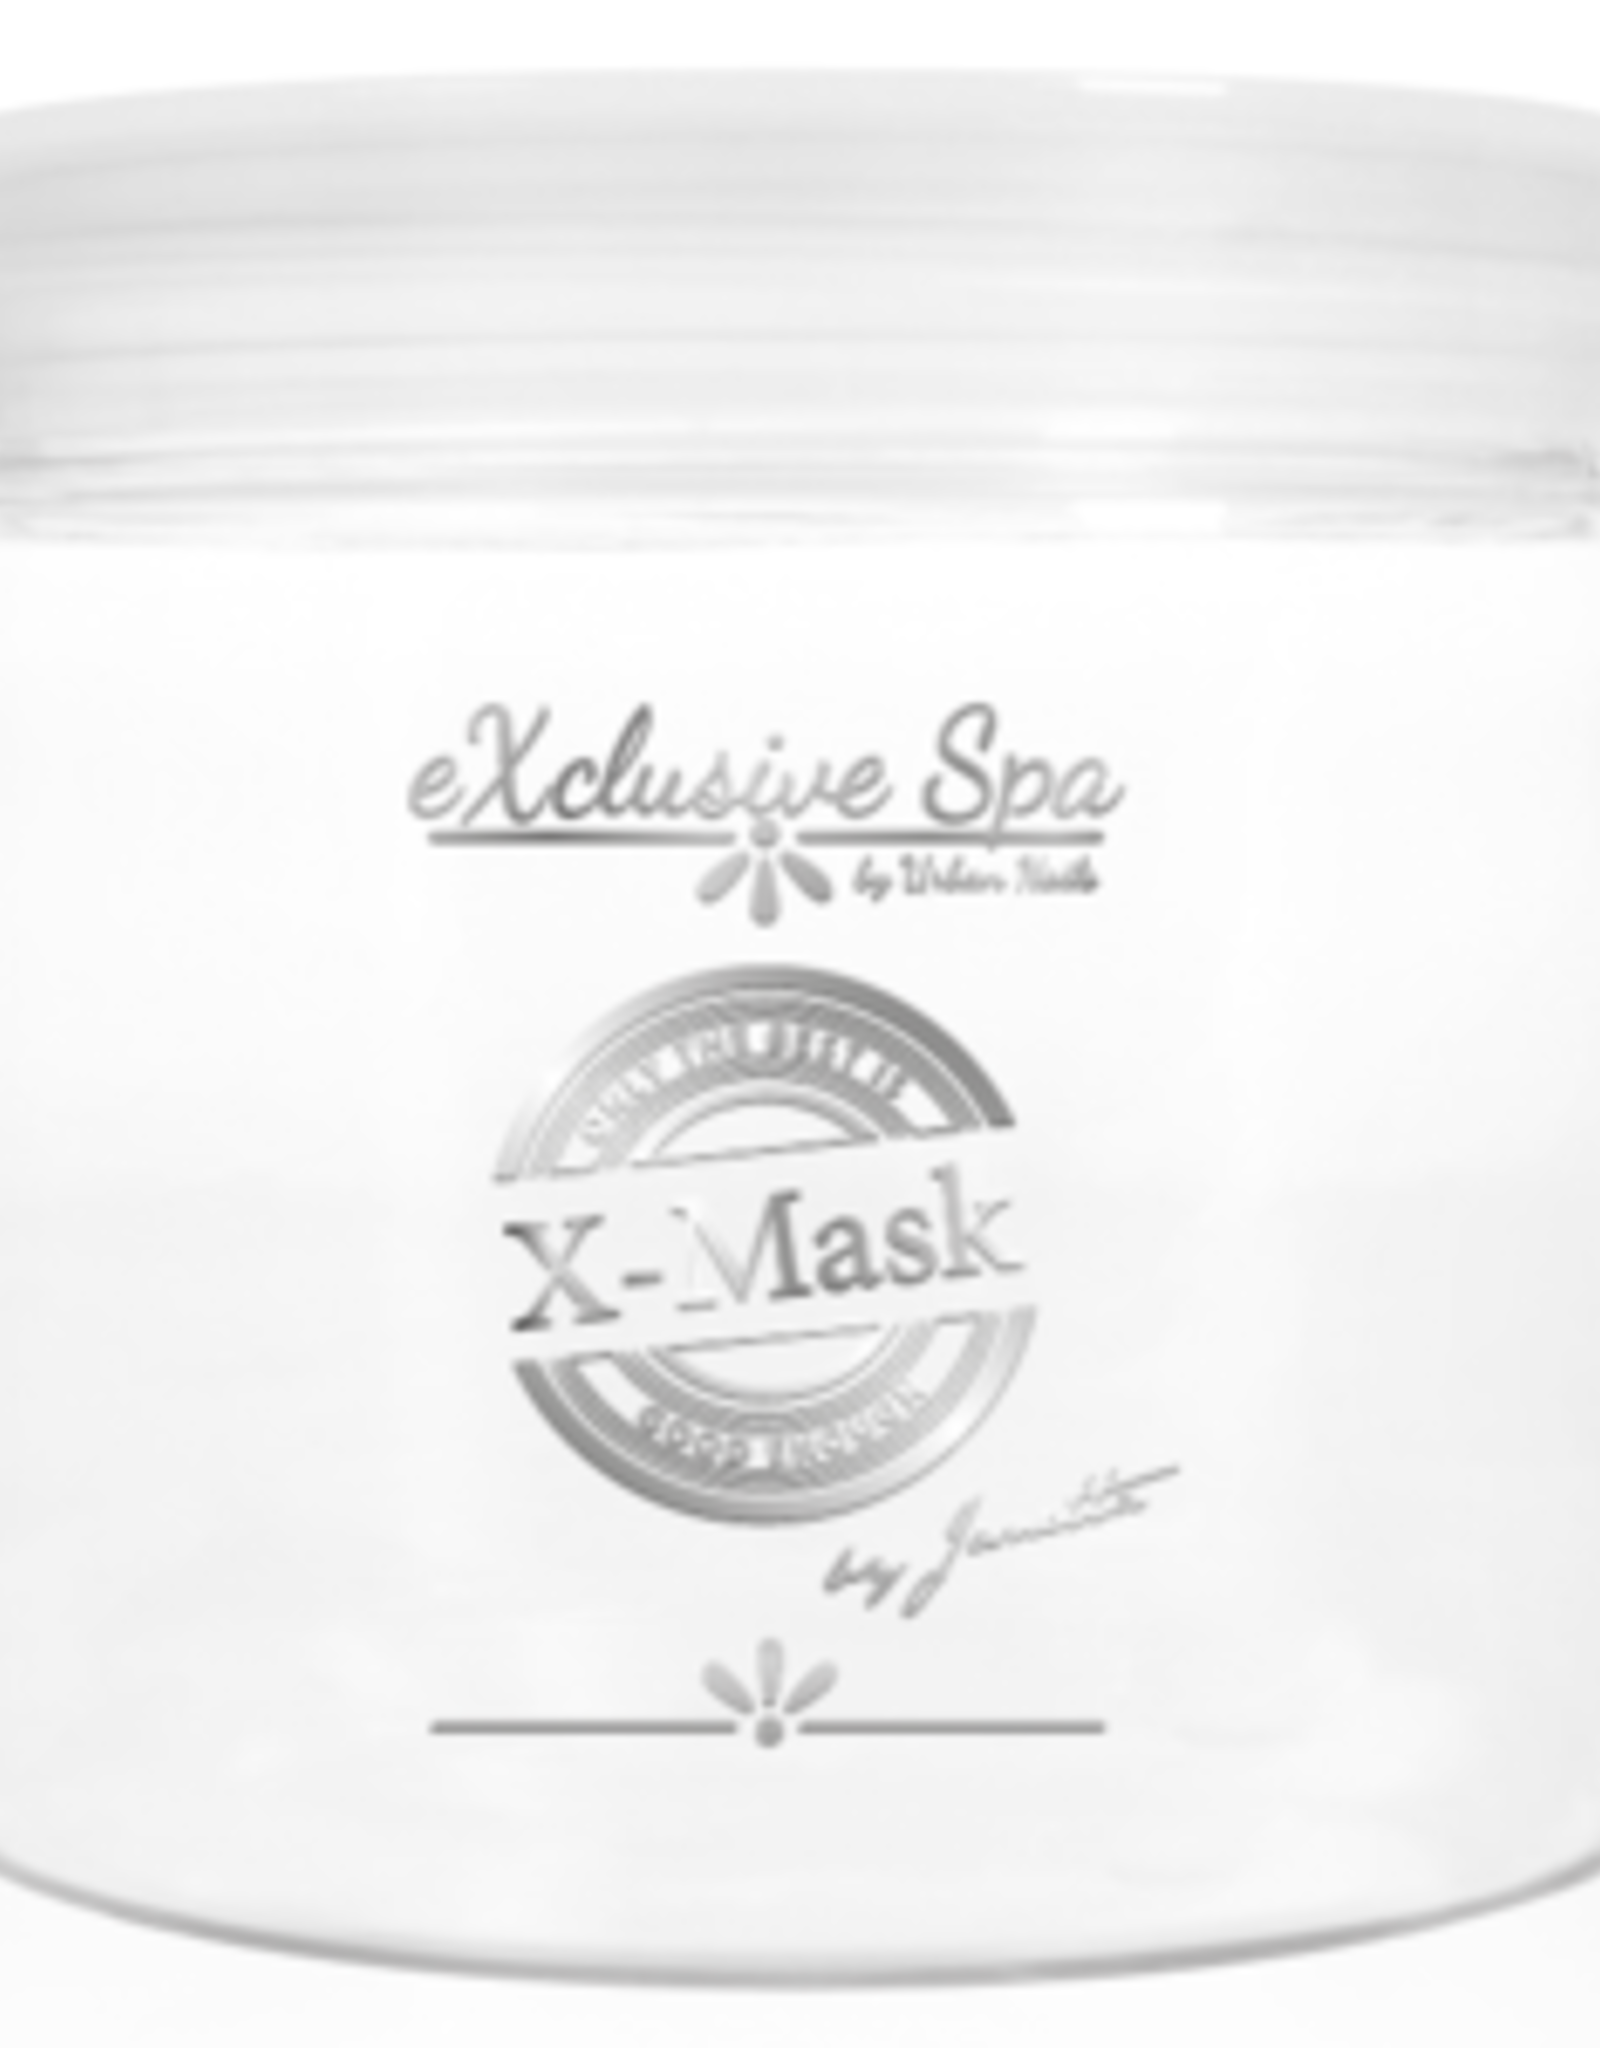 Urban Nails Exclusive Spa X-Mask